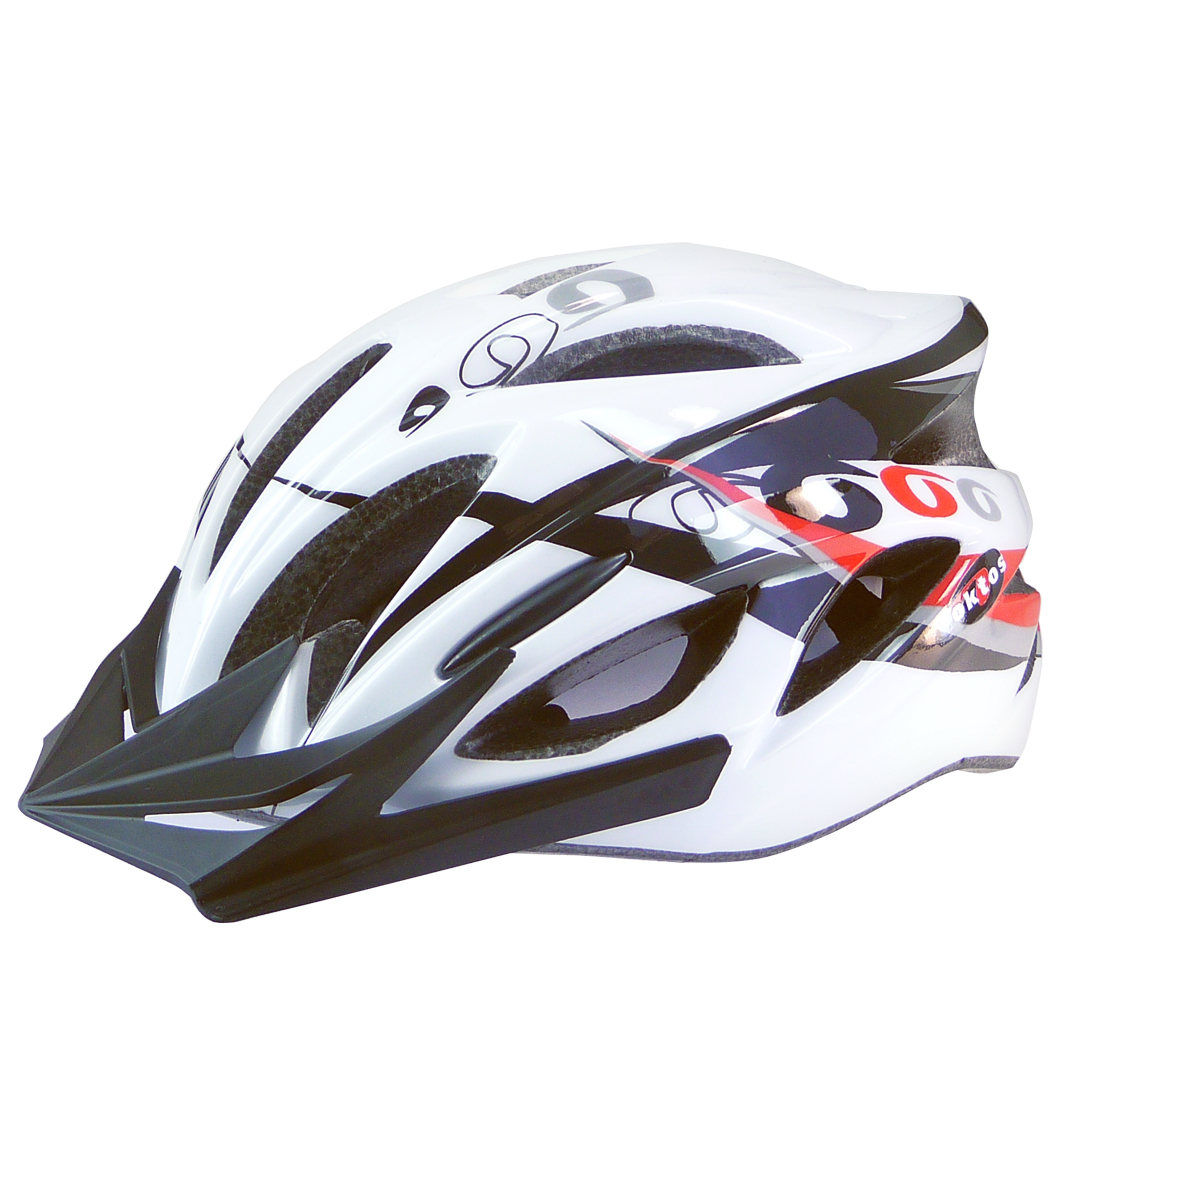 Casque vélo adulte Oktos design Rings V2 (54-58 cm) Blanc